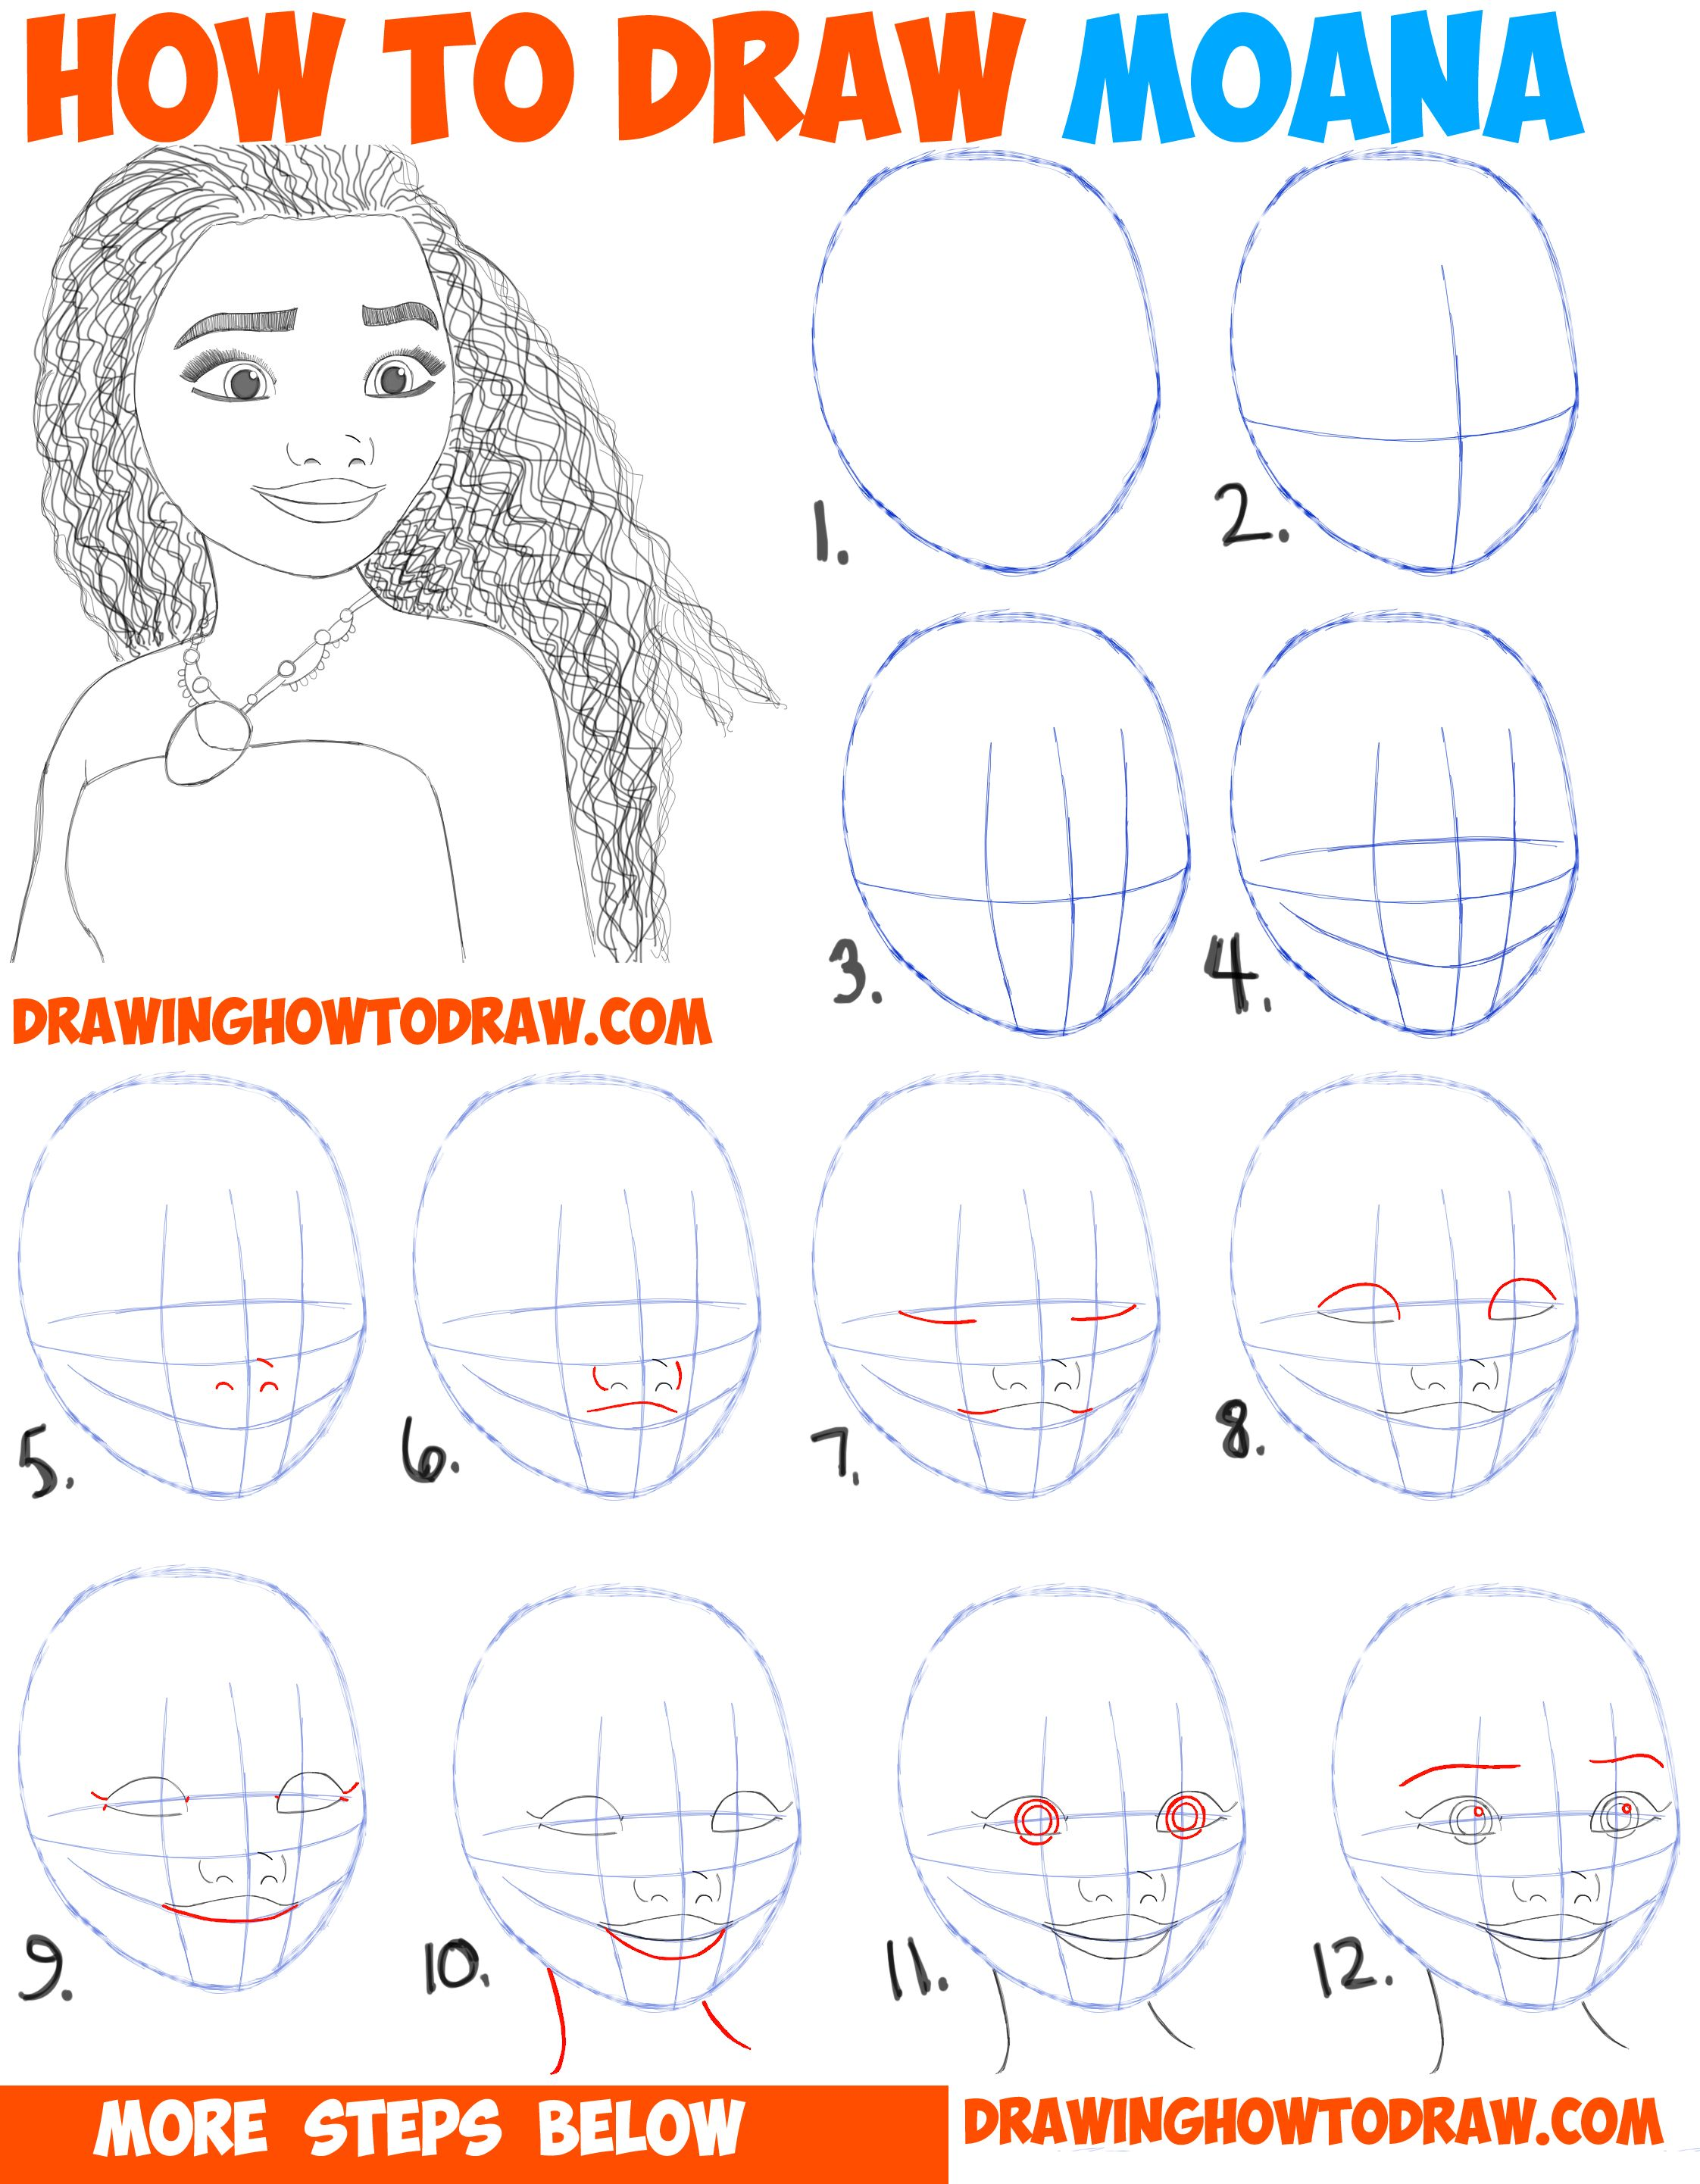 How to draw moana easy step by step drawing tutorial for for Drawing ideas for beginners step by step